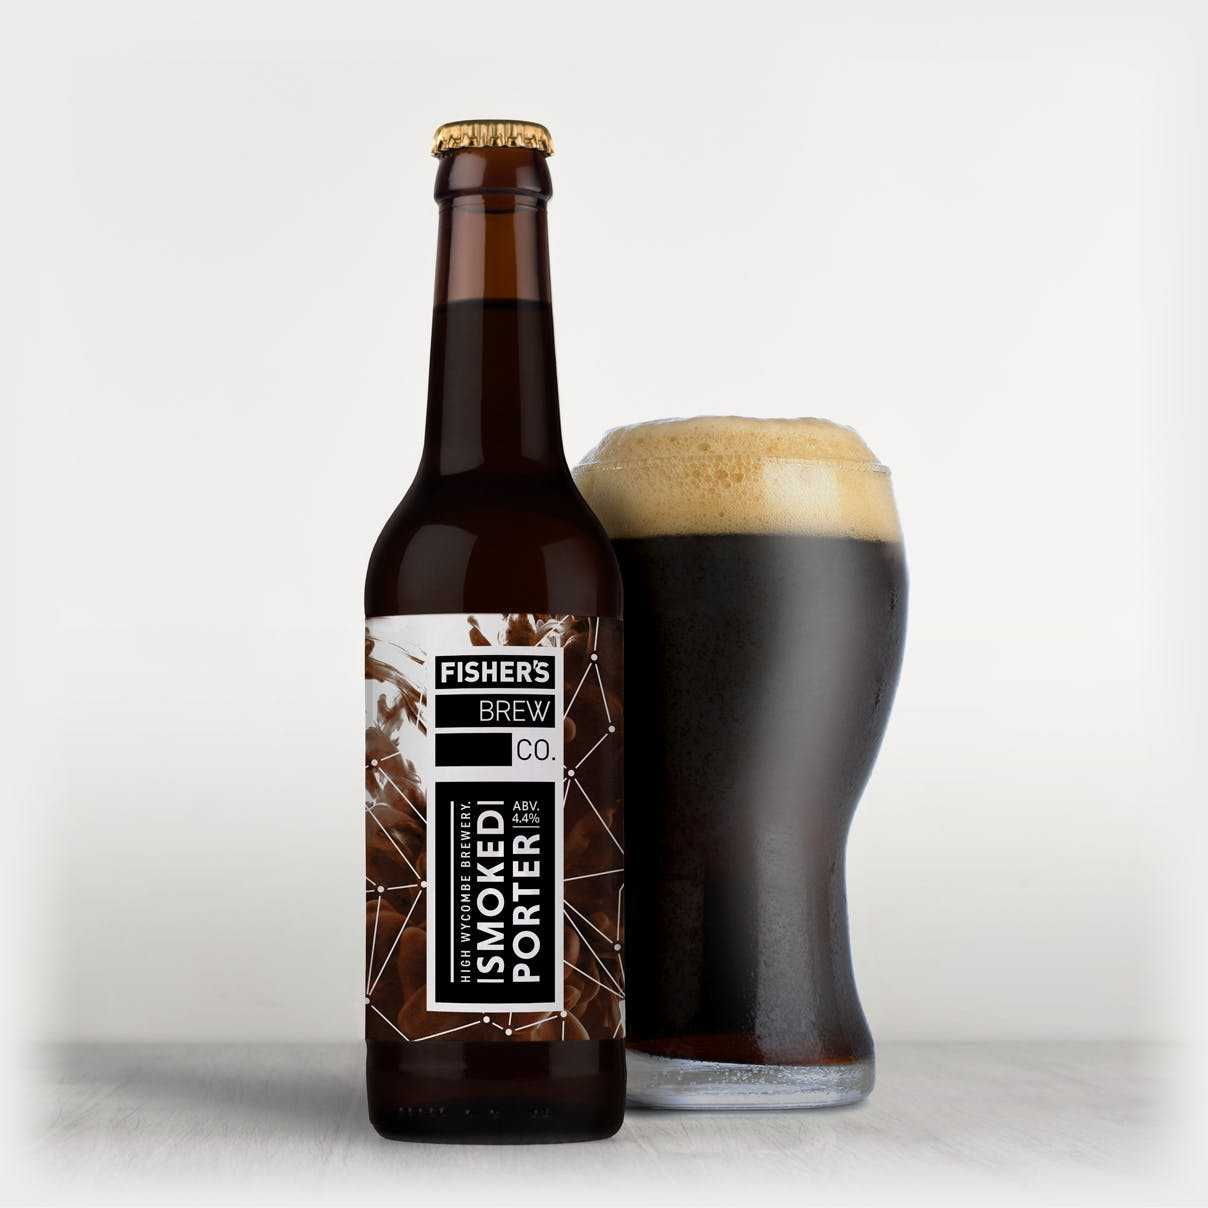 Fisher's branded Smoked Porter bottle and glass of beer